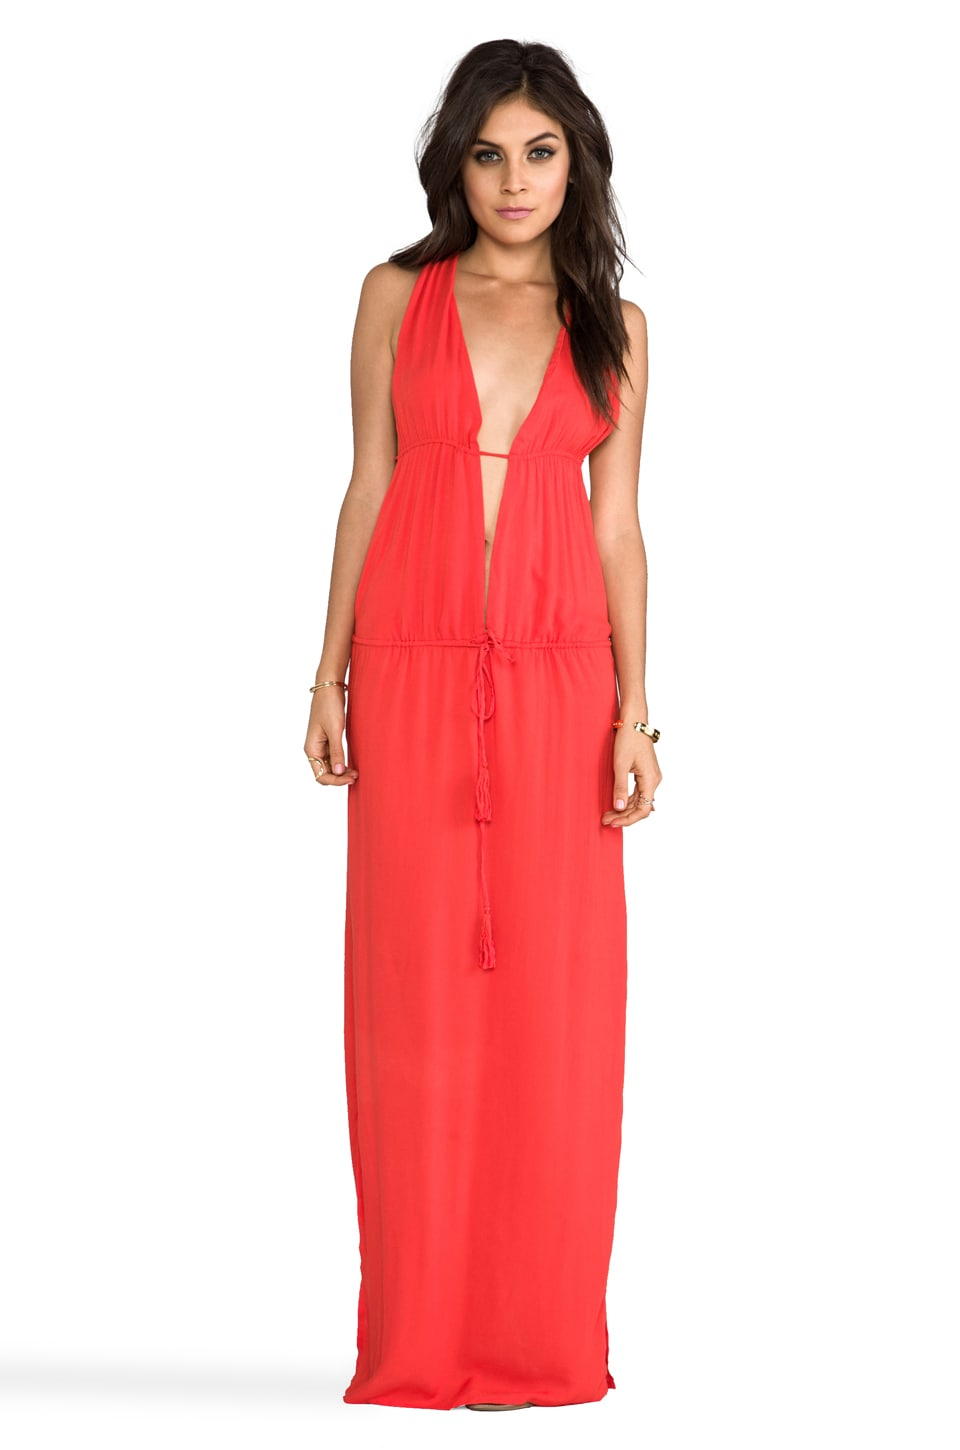 Indah Nyx Rayon Crepe Split Front Open Back Halter Maxi Dress in Papaya